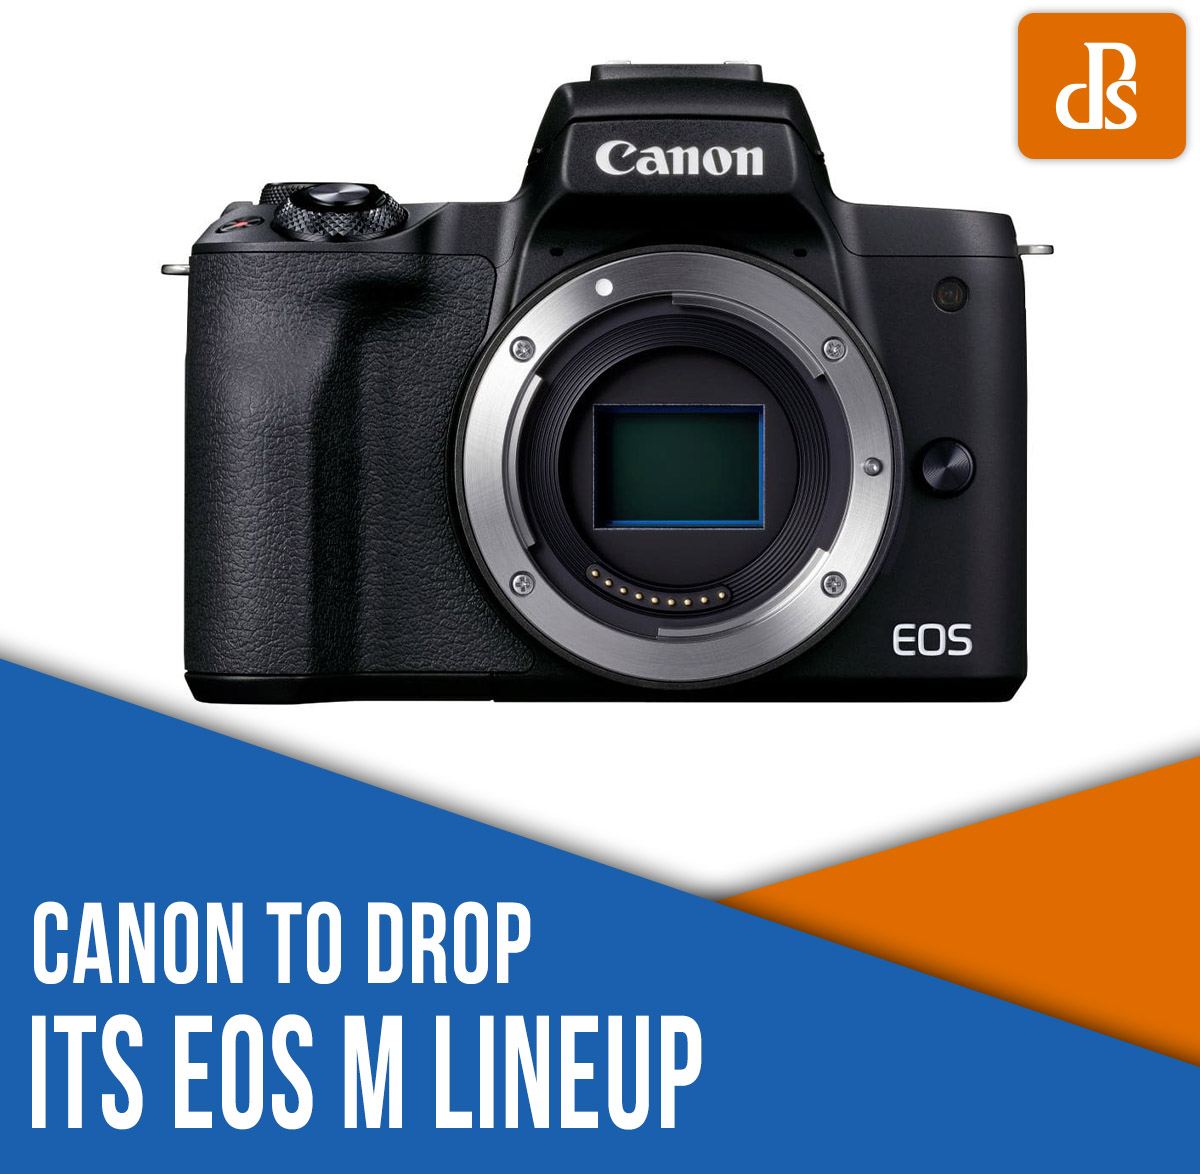 Canon to drop its EOS M lineup